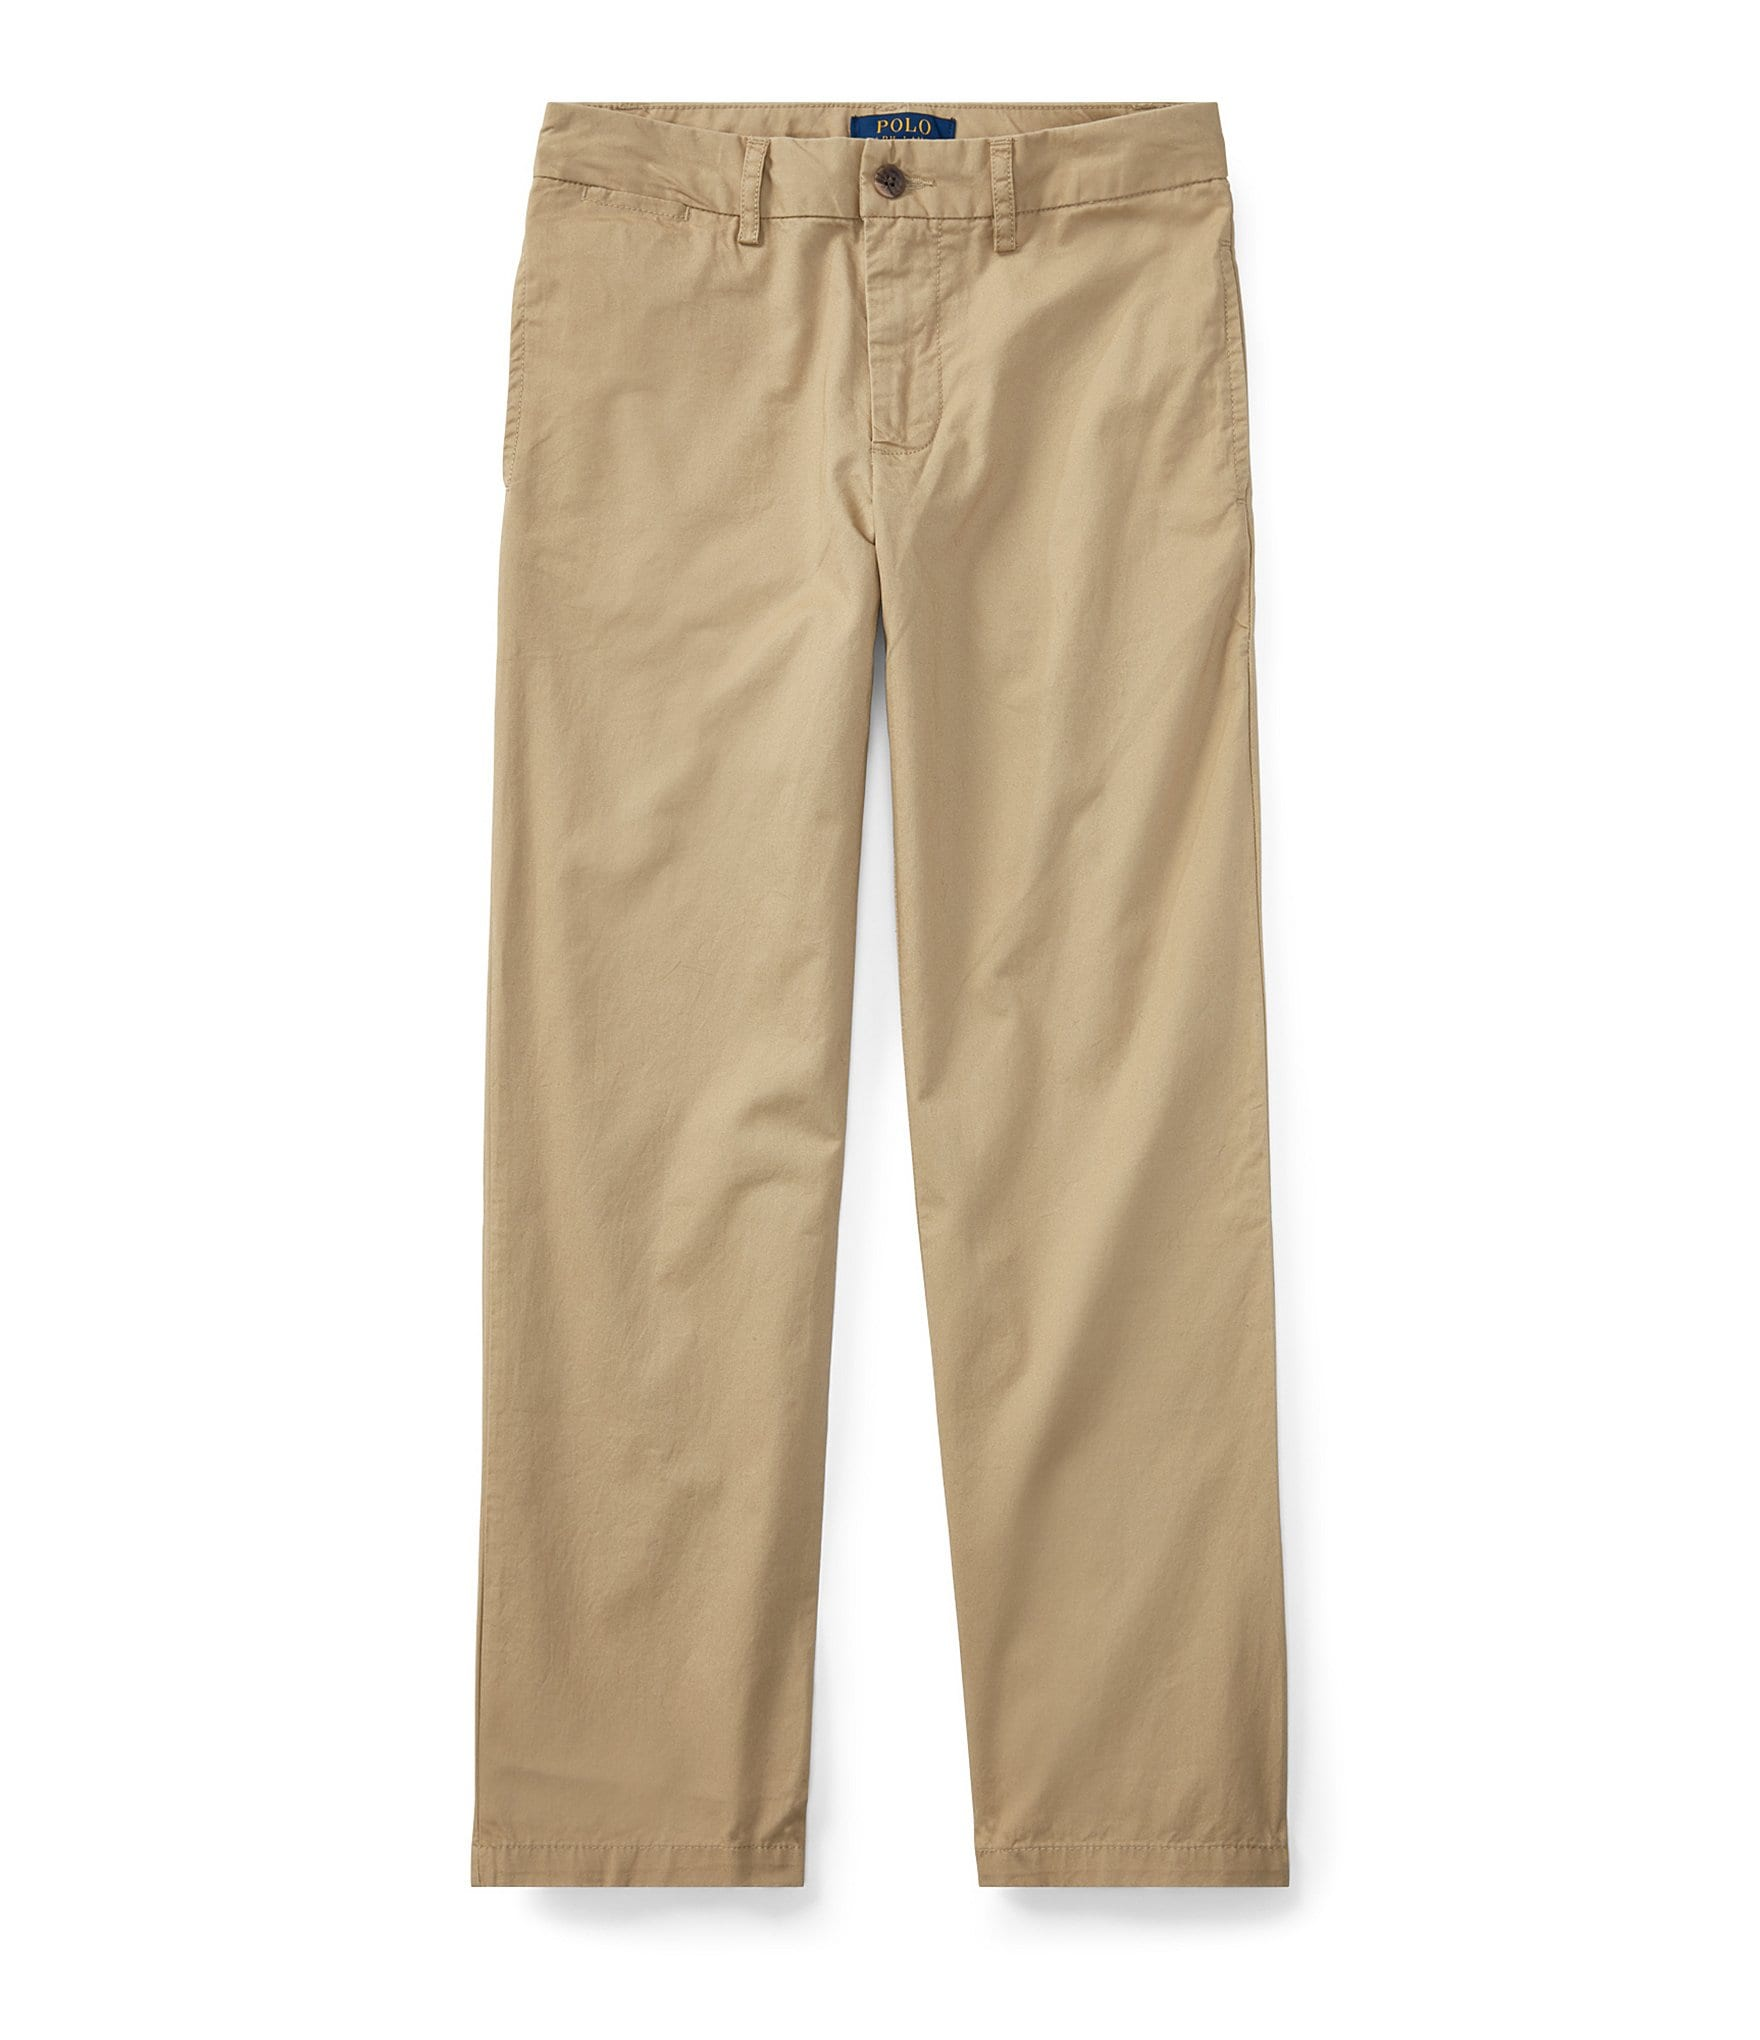 e836f9a6be Ralph Lauren Childrenswear Big Boys 8-20 Suffield Flat Front Chino Pants